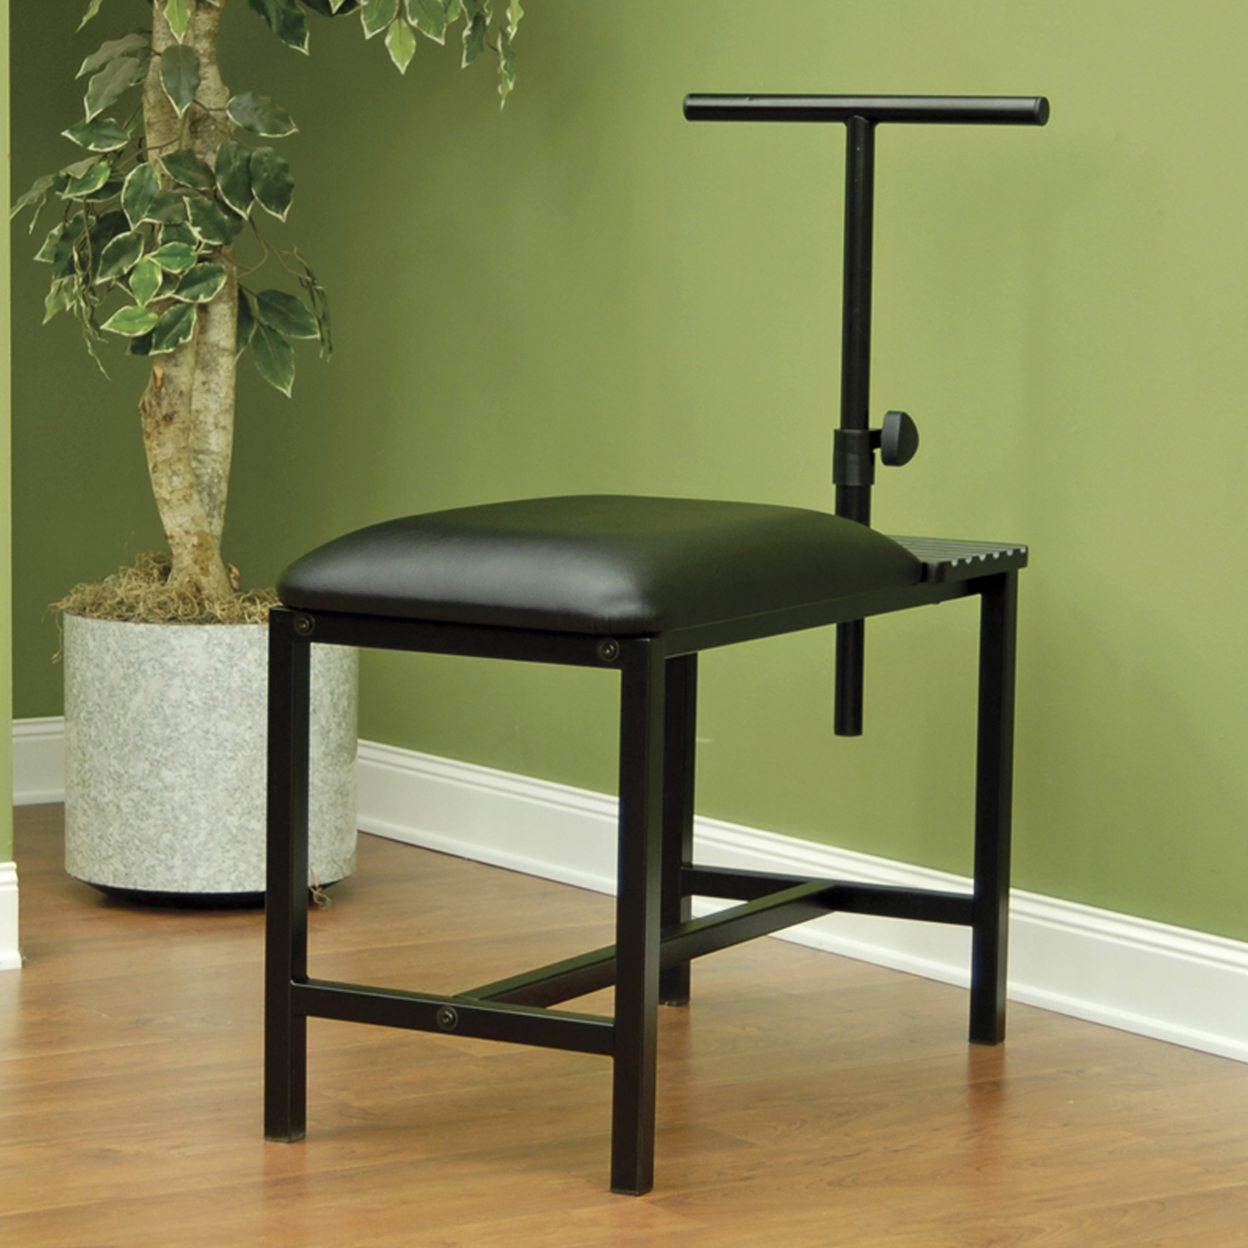 Offex Home Office Studio Bench - Black offex home office plinth ottoman latte